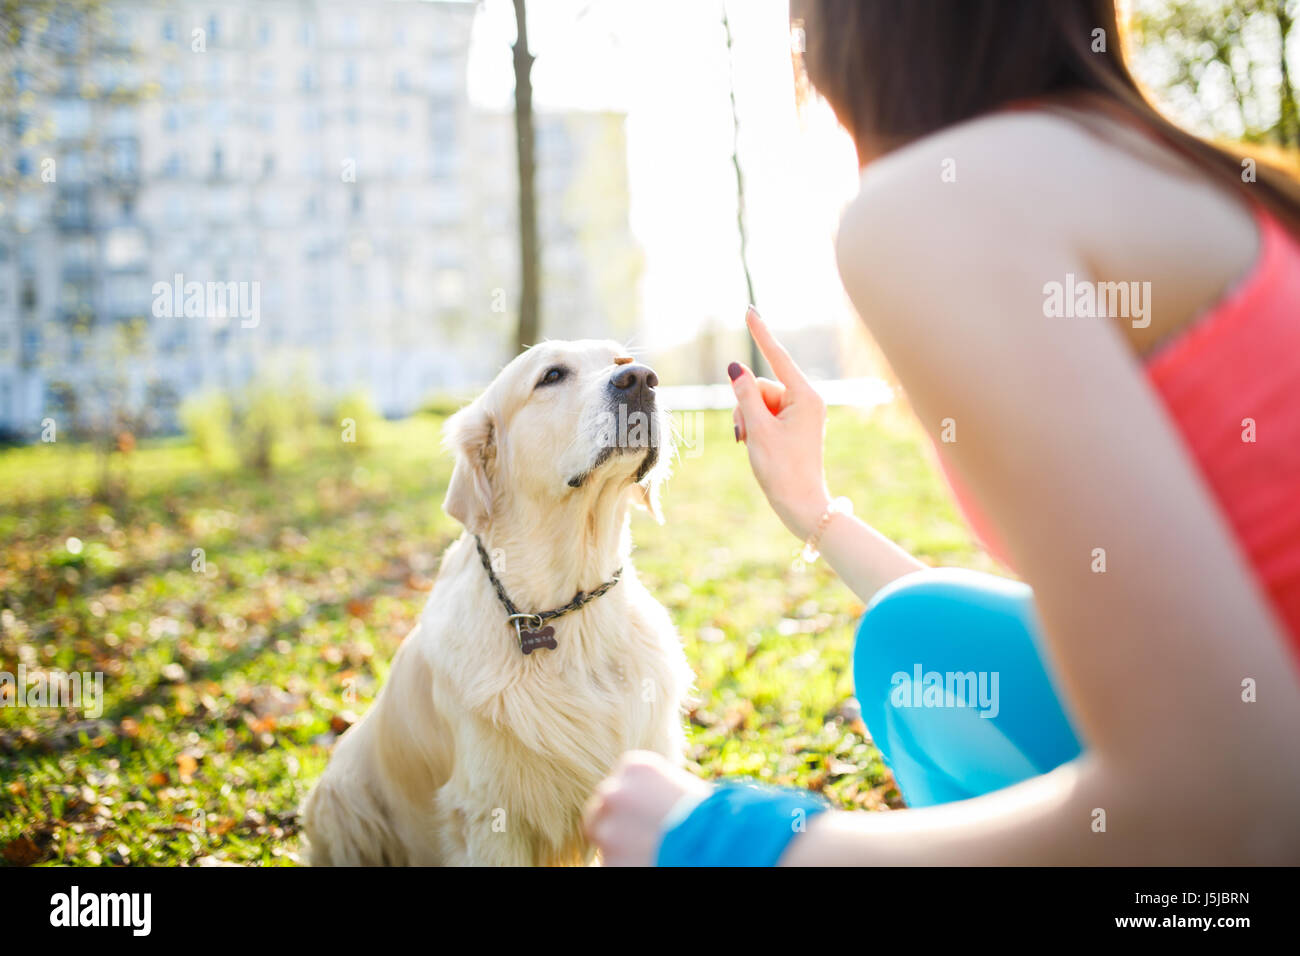 Girl training dog at park - Stock Image